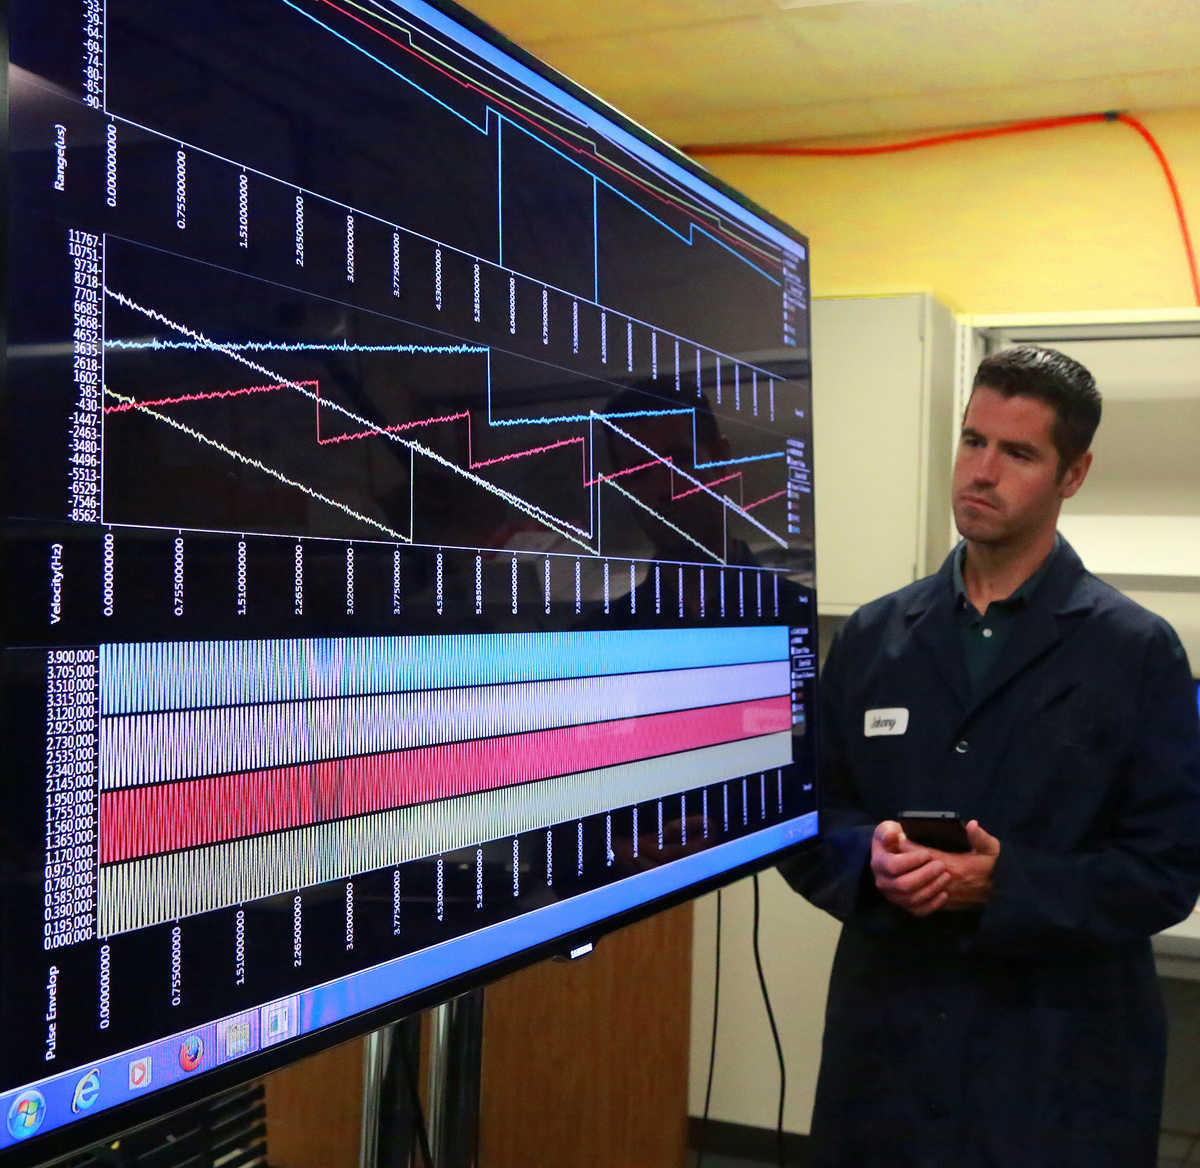 Engineer viewing SPARTA software on a large screen television